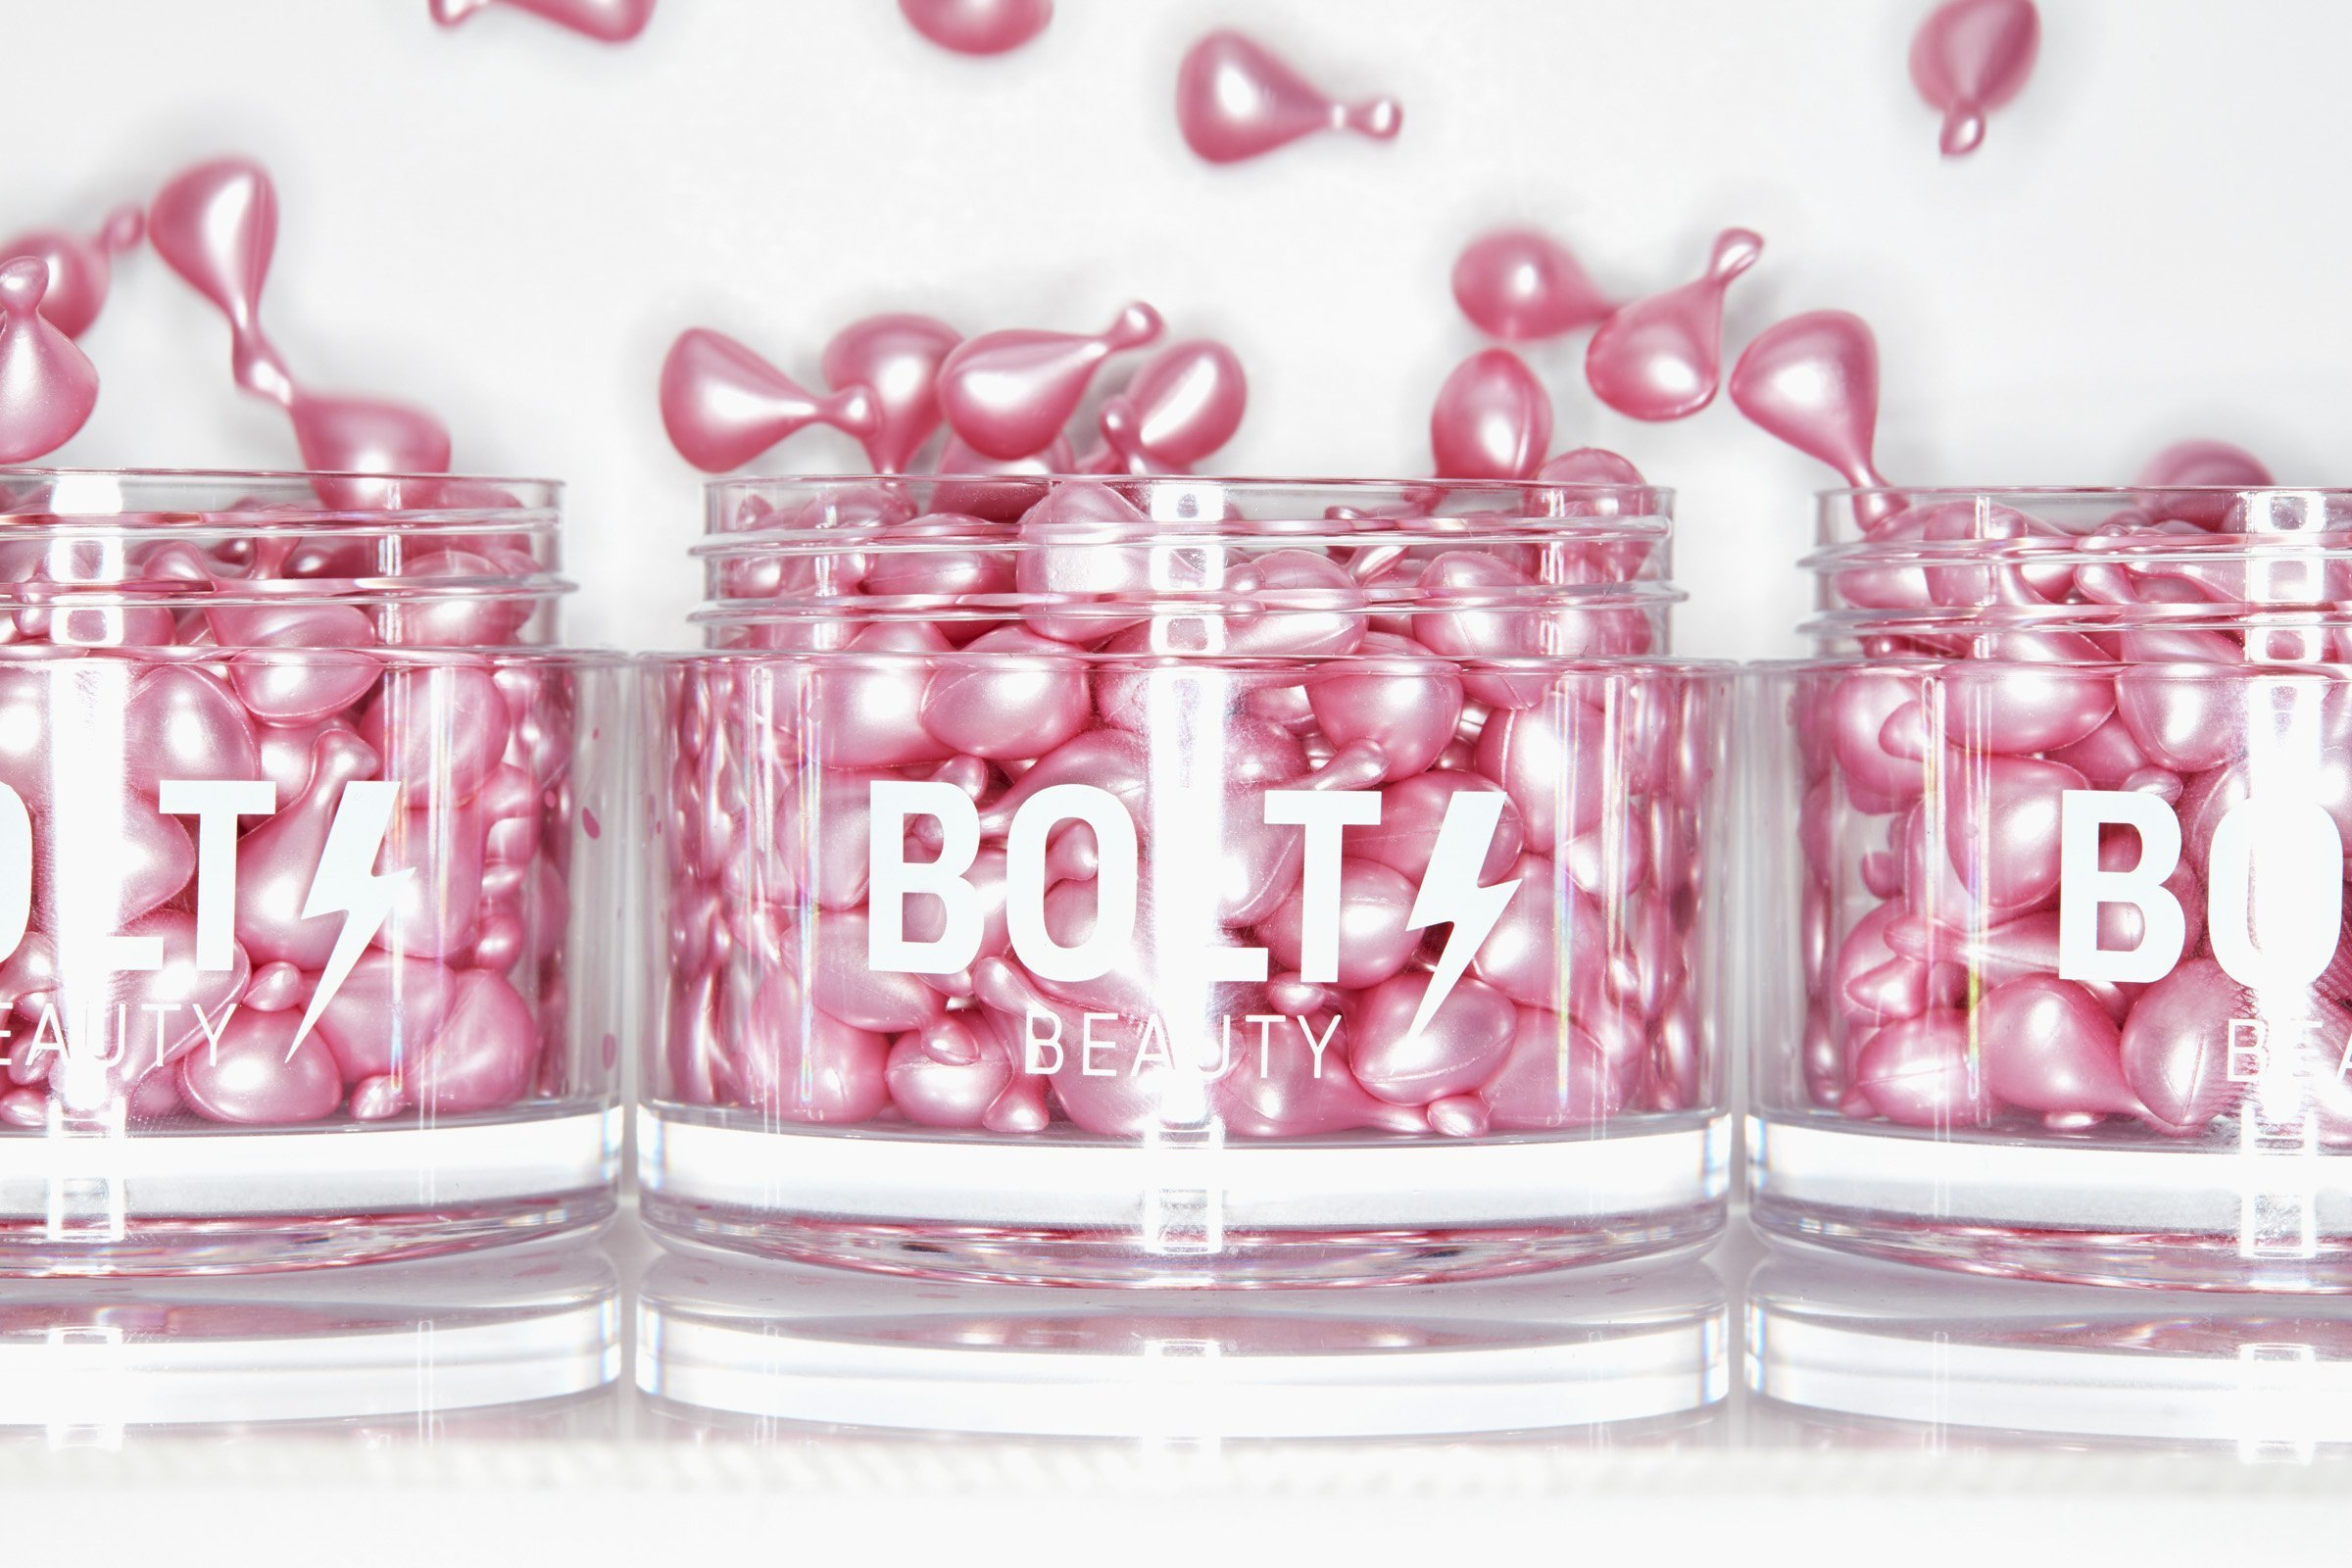 Bolt Beauty Offers A Range Of Encapsulated Skincare Designed For Women S Busy Lives Beauty Independent